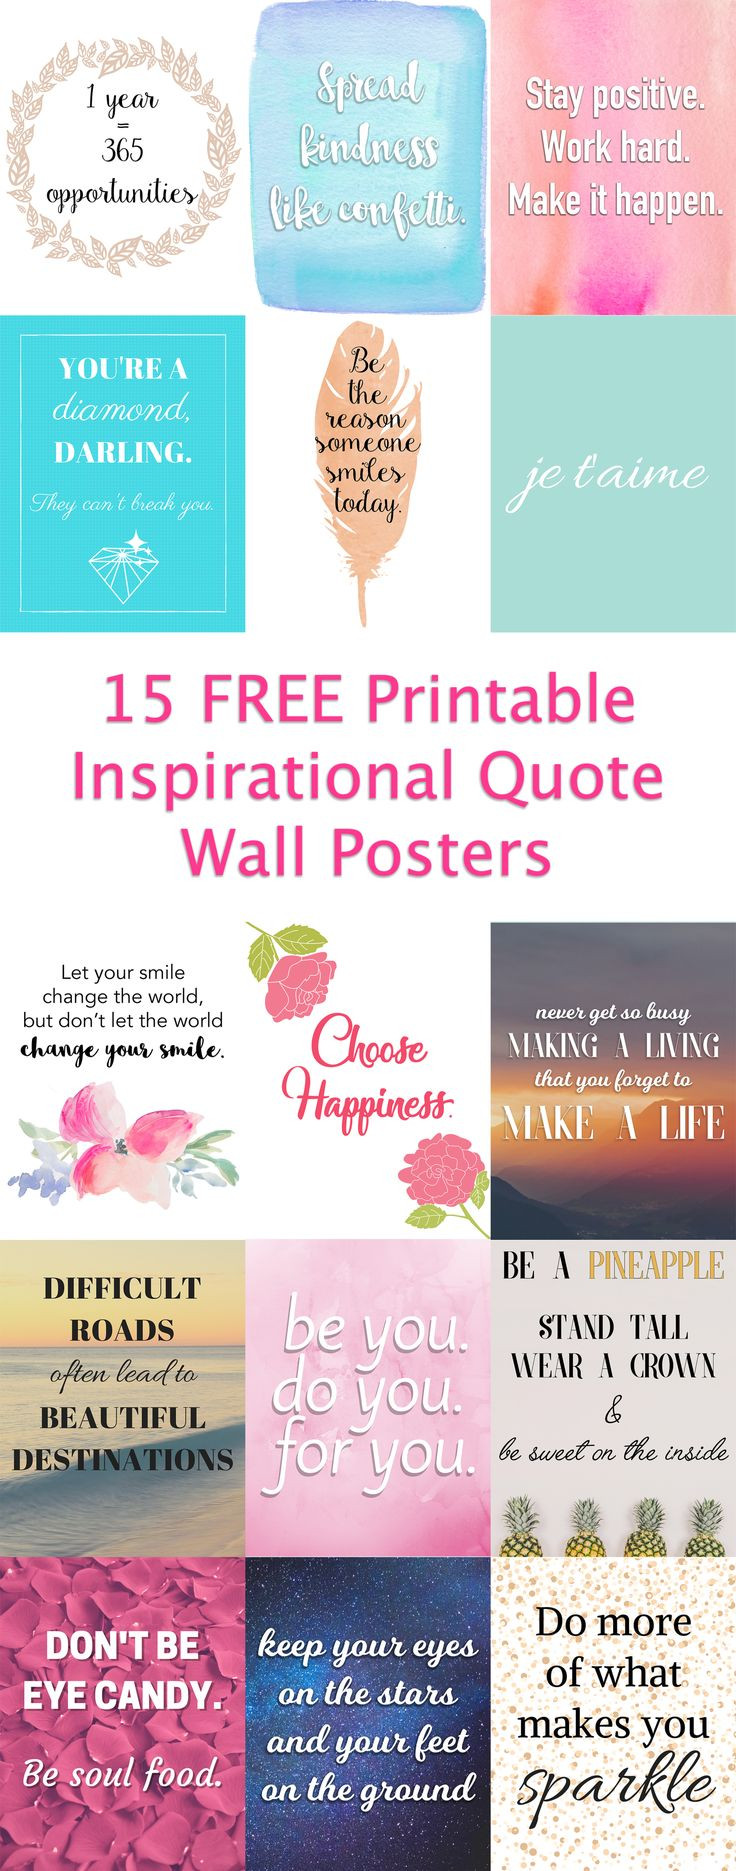 Free Motivational Quotes  I created 15 FREE printable inspirational quote posters